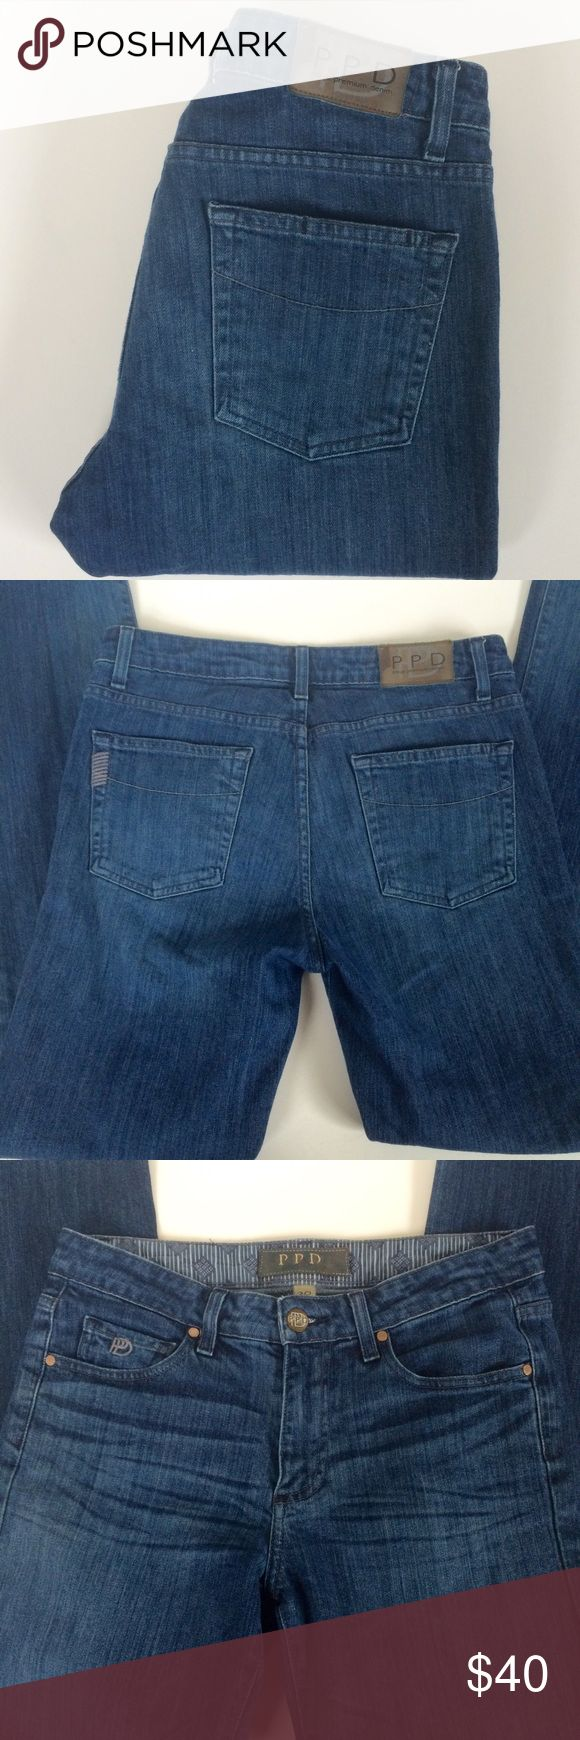 Men's PPD Paige Premium Denim Doheny Straight Leg Pre-owned in excellent condition.  Only worn once or twice.  Inseam measures at 32 inches. PPD Jeans